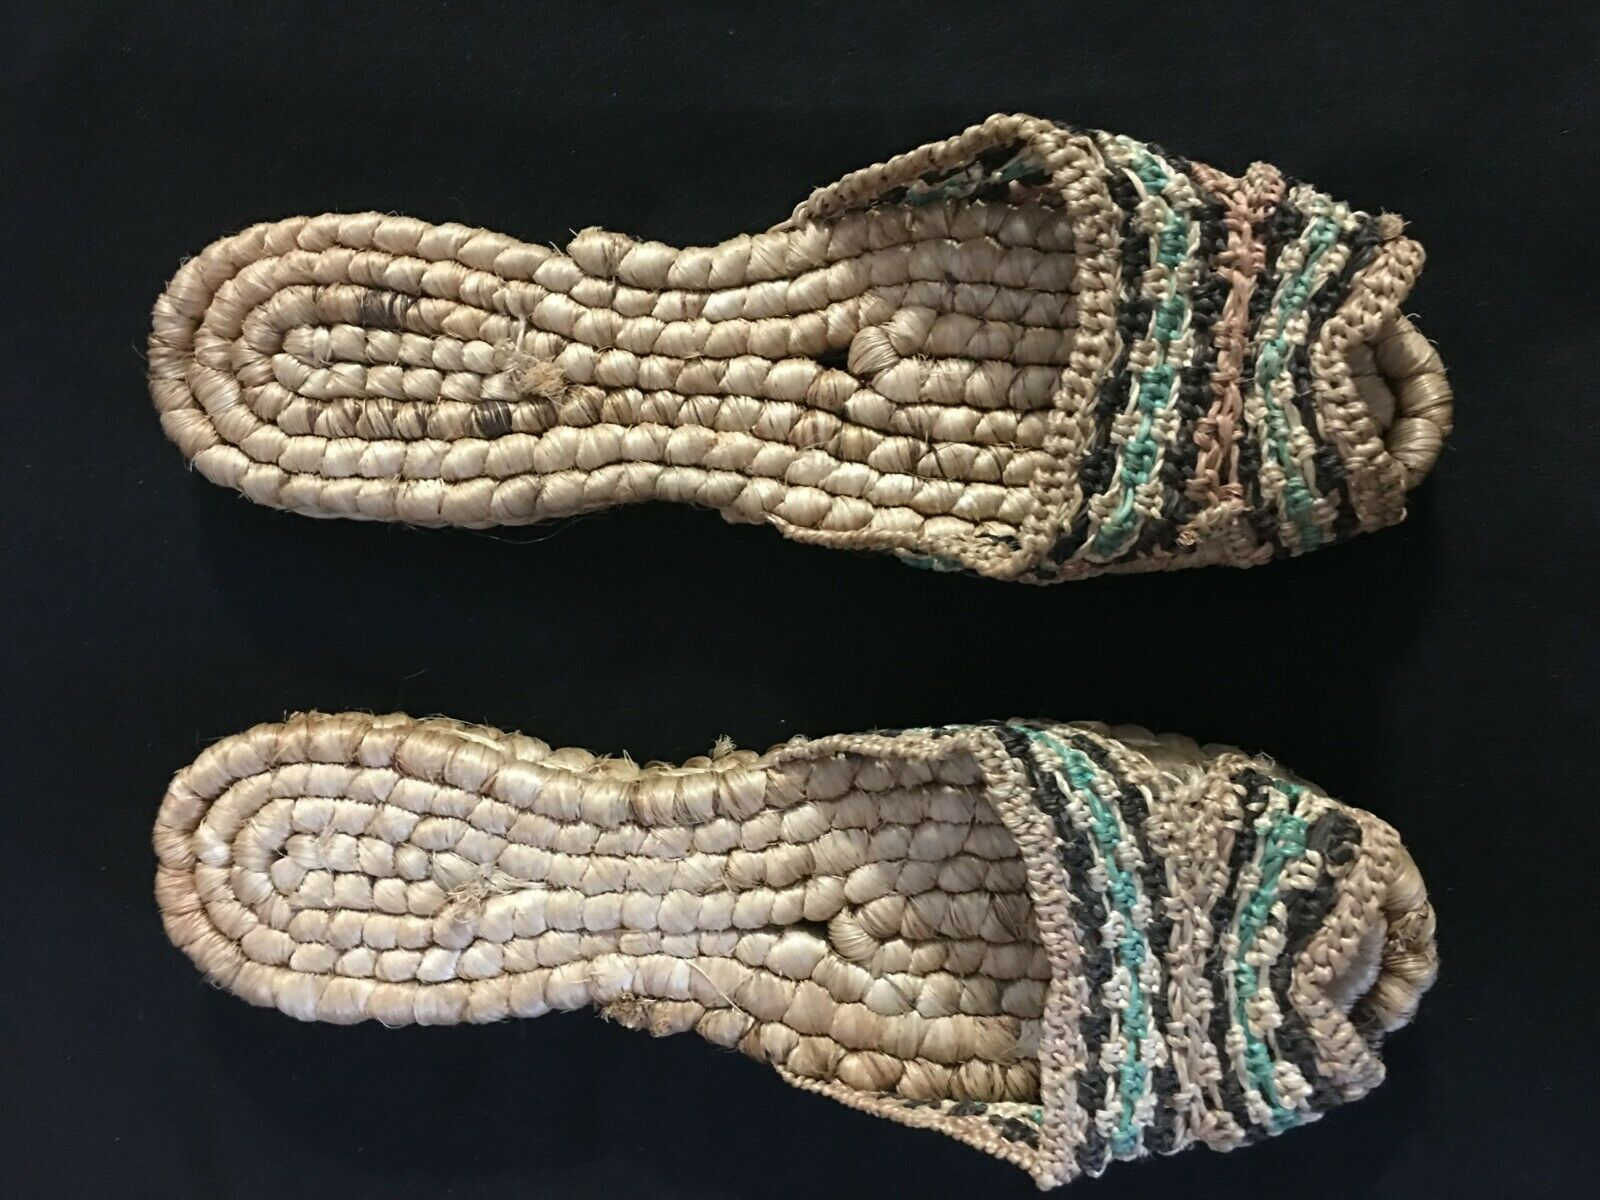 Vintage 1940's Hand Woven Women's Sandals from Ph… - image 1